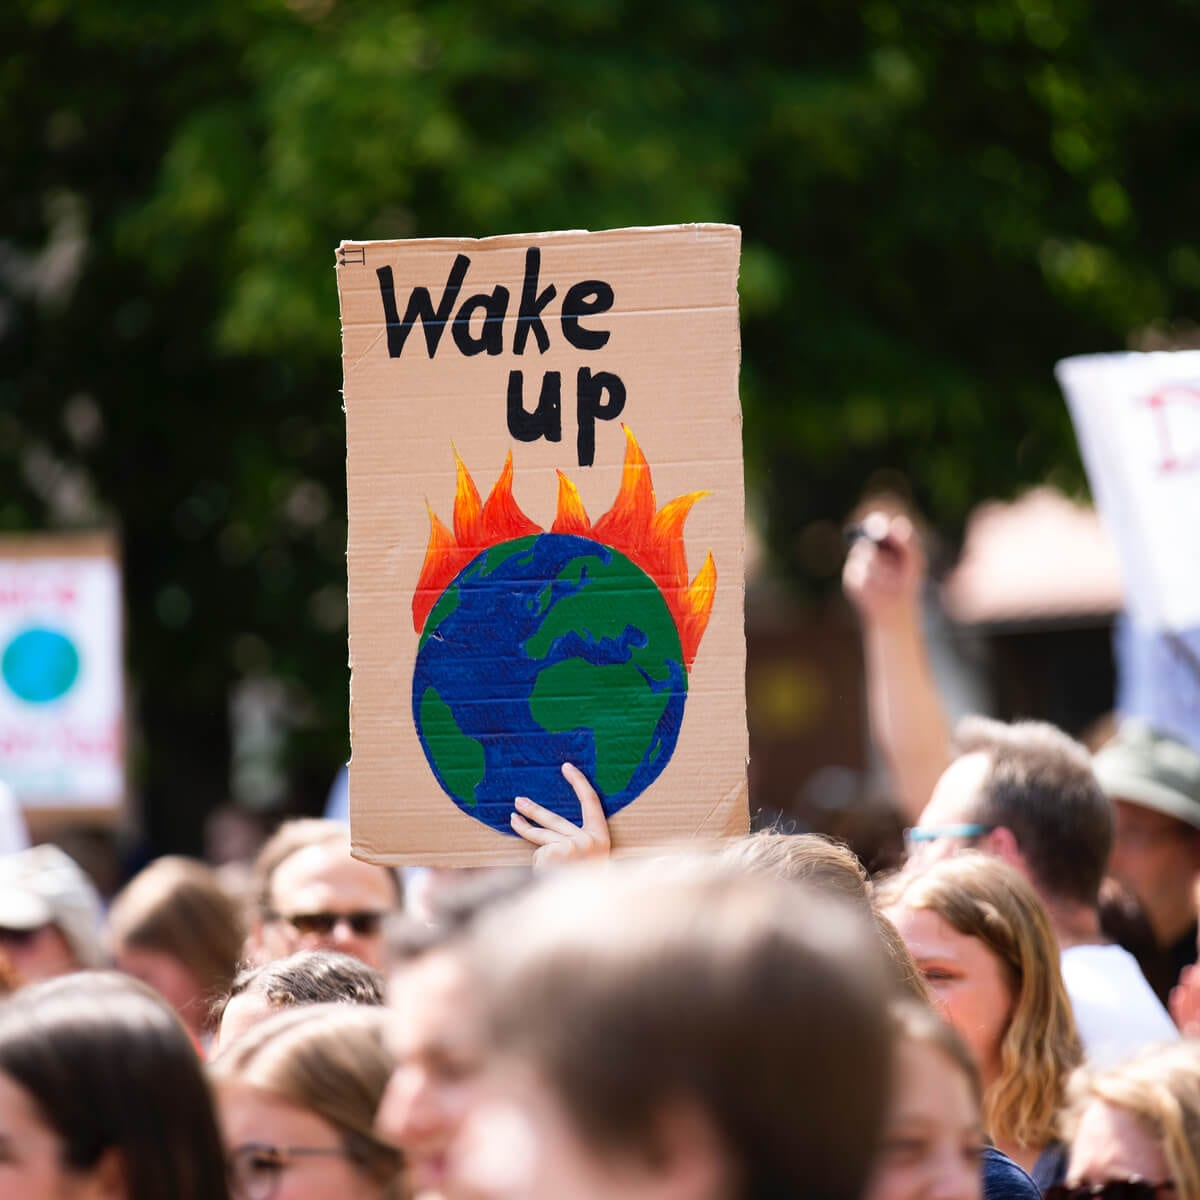 protestor sign with wake up and drawing of planet on fire